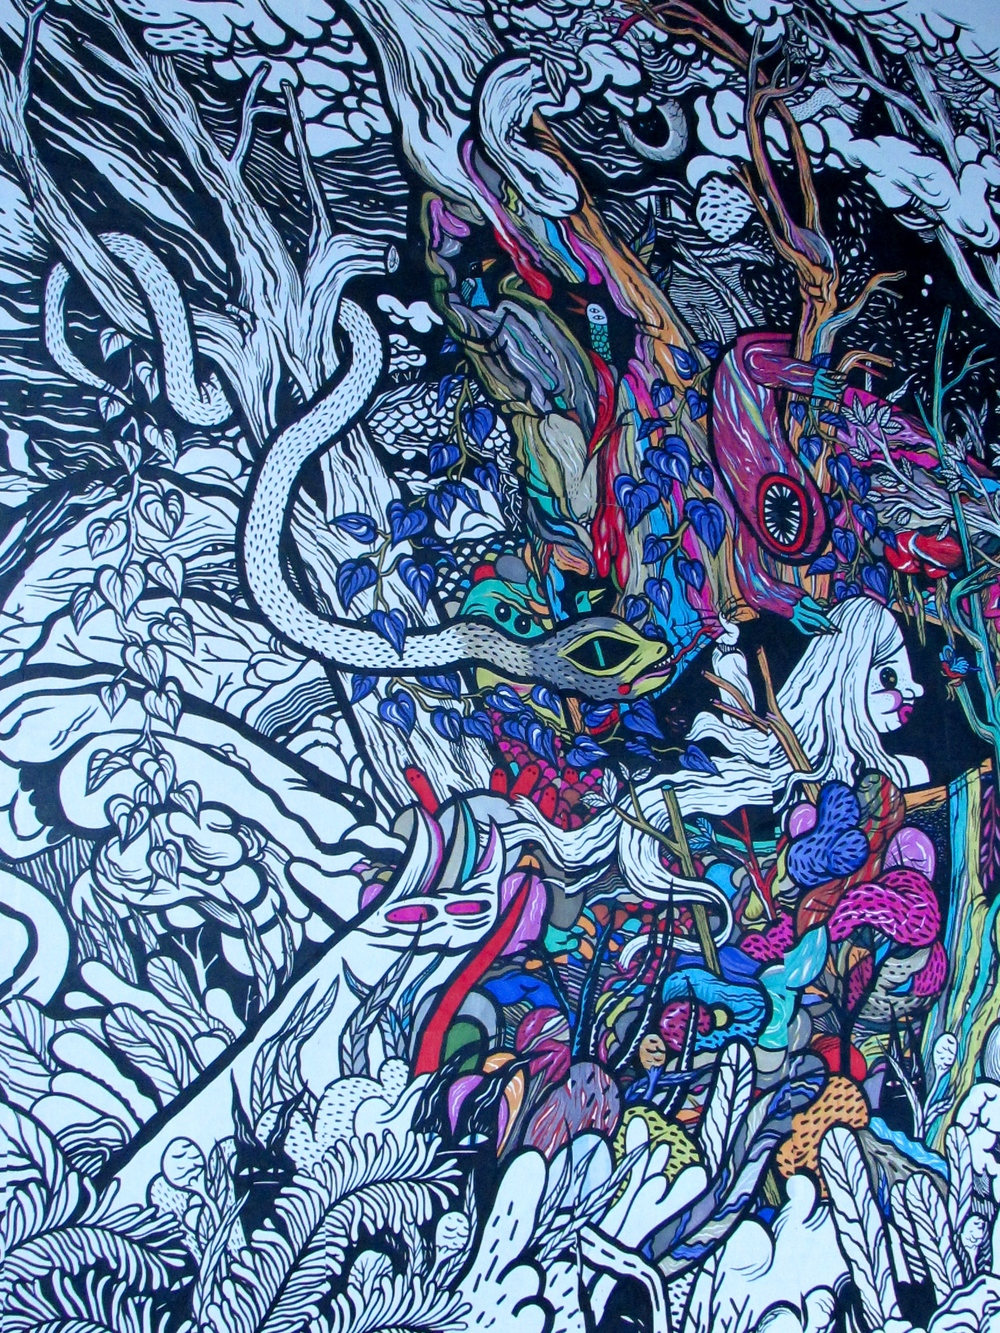 A Strange Dream by Edmonton artist Jill Stanton (a small portion of the massive piece is pictured) is on display at the Art Gallery of Alberta until December 2014.